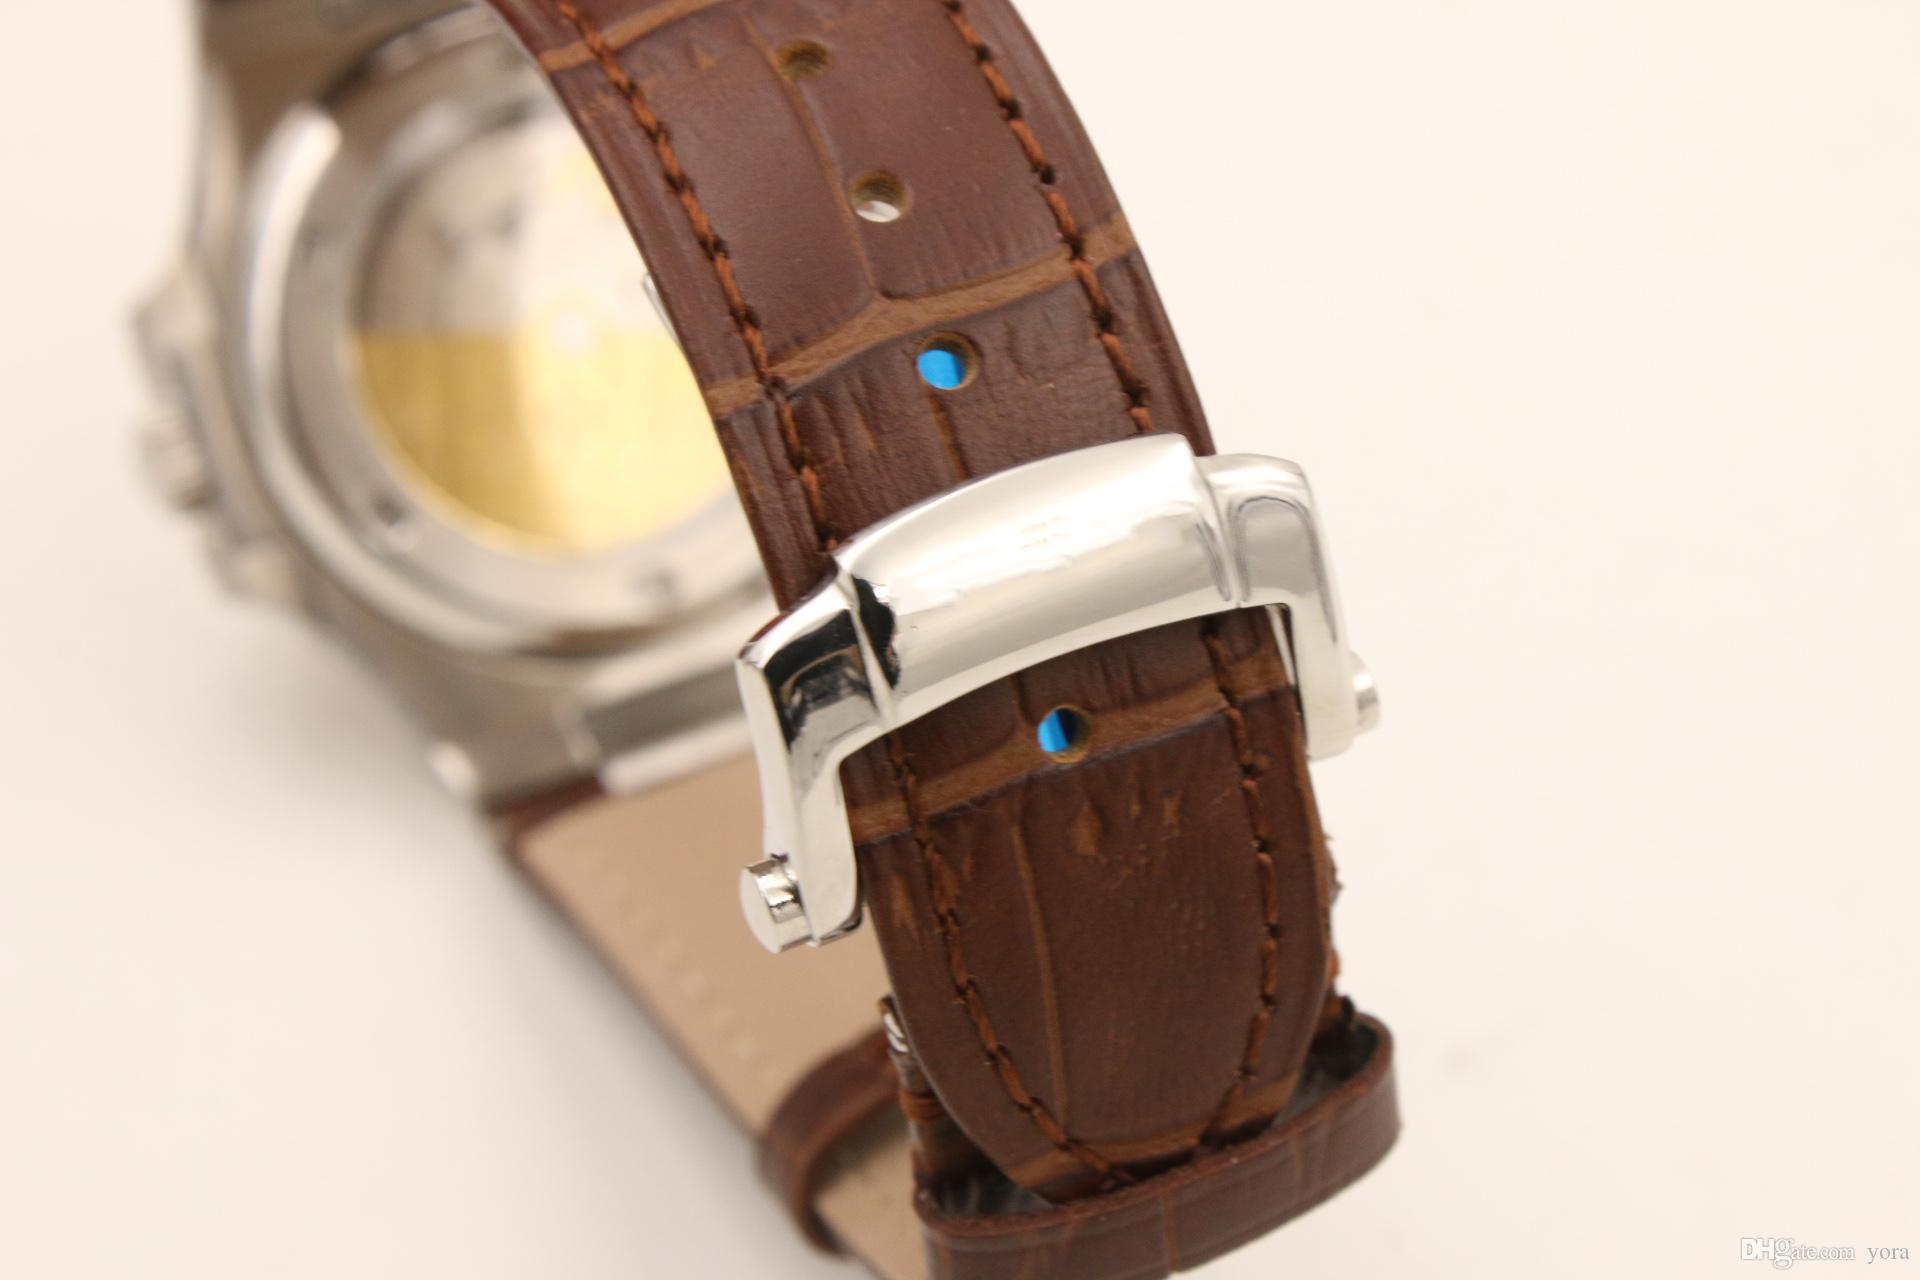 massimo quality from repairs lab watches the watch dutti